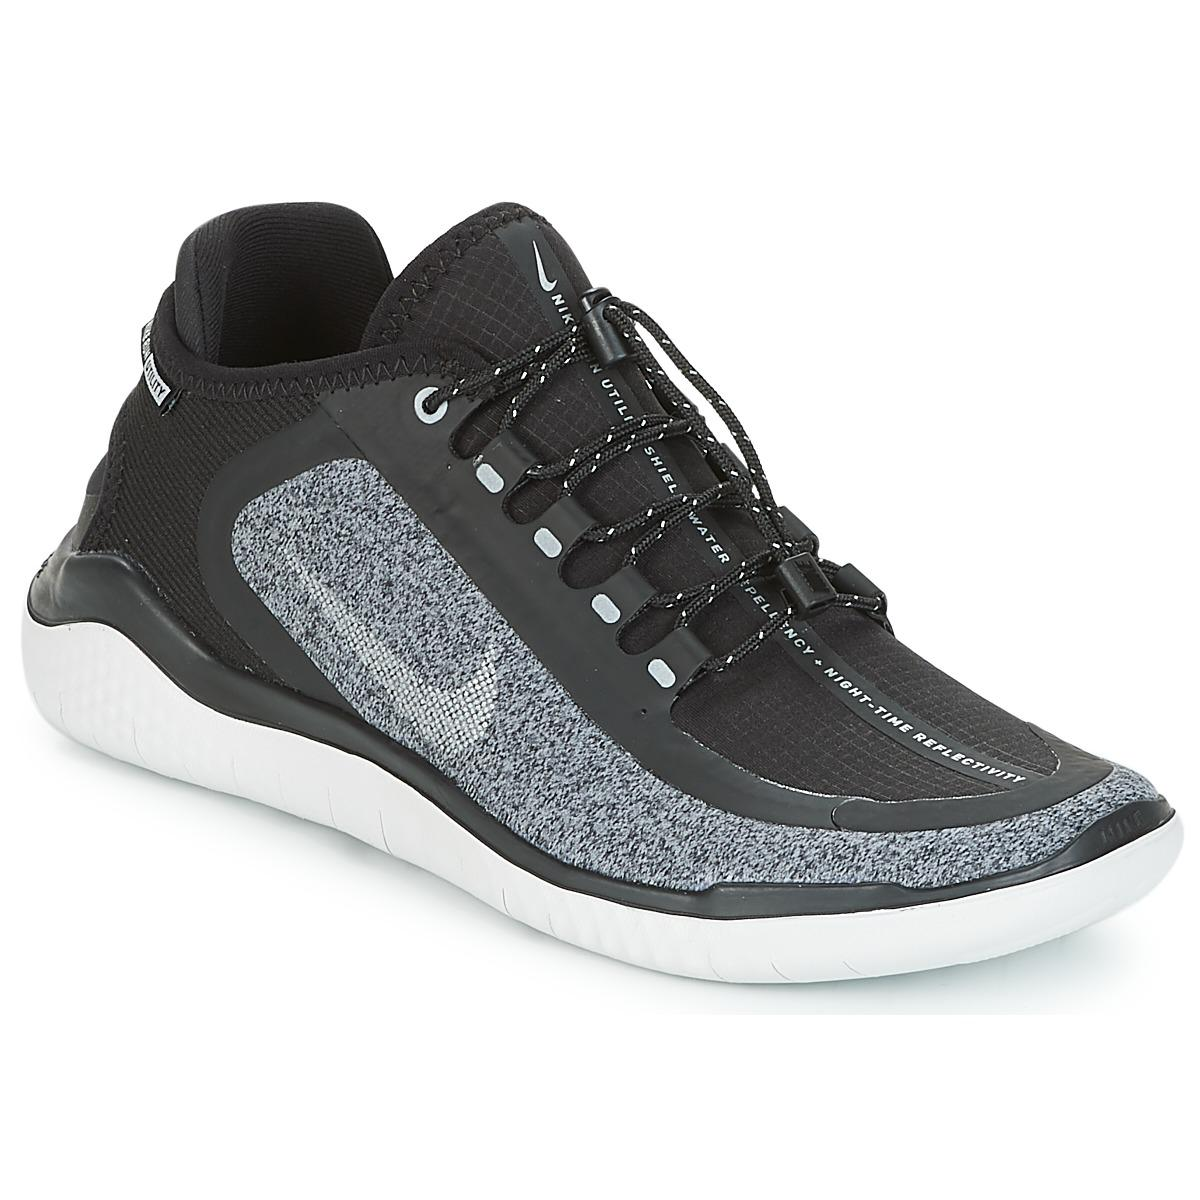 online store 85f4b d58a4 Tap to visit site. Nike - Free Run 2018 Shield Women's Running Trainers In  Black - Lyst